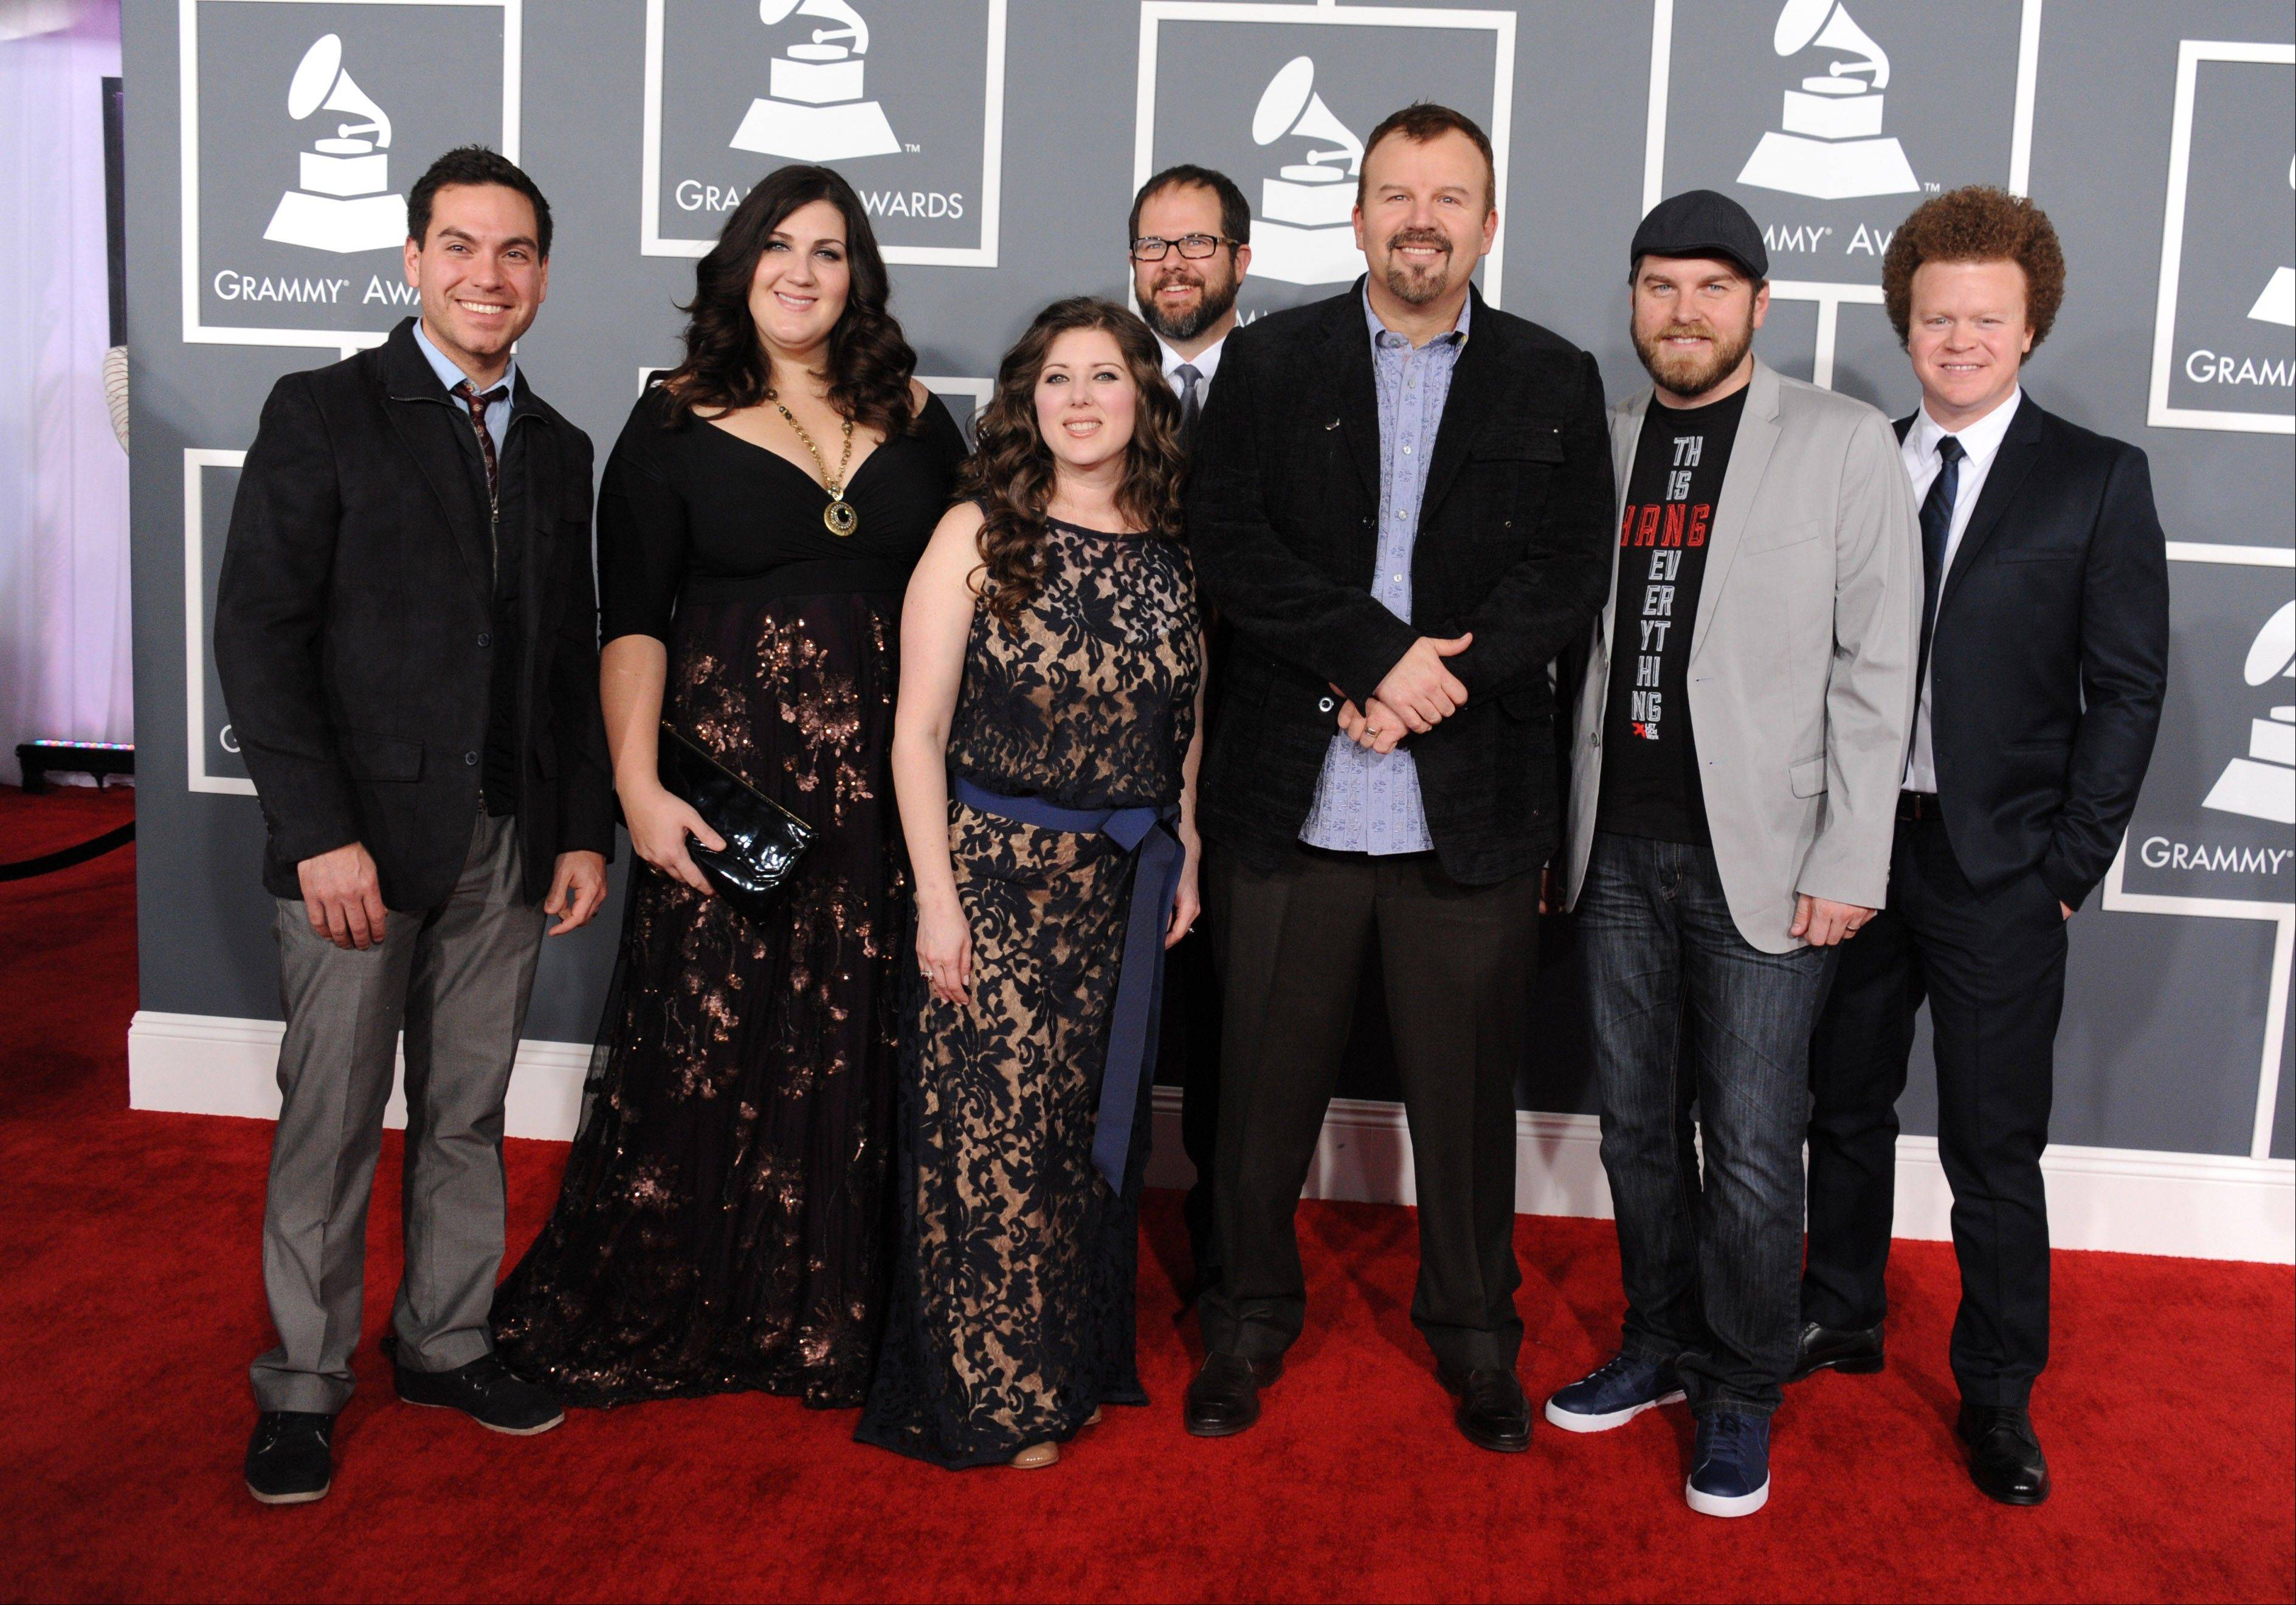 Casting Crowns brings its Thrive Tour to the Sears Centre Arena in Hoffman Estates at 7 p.m. Friday, March 14.